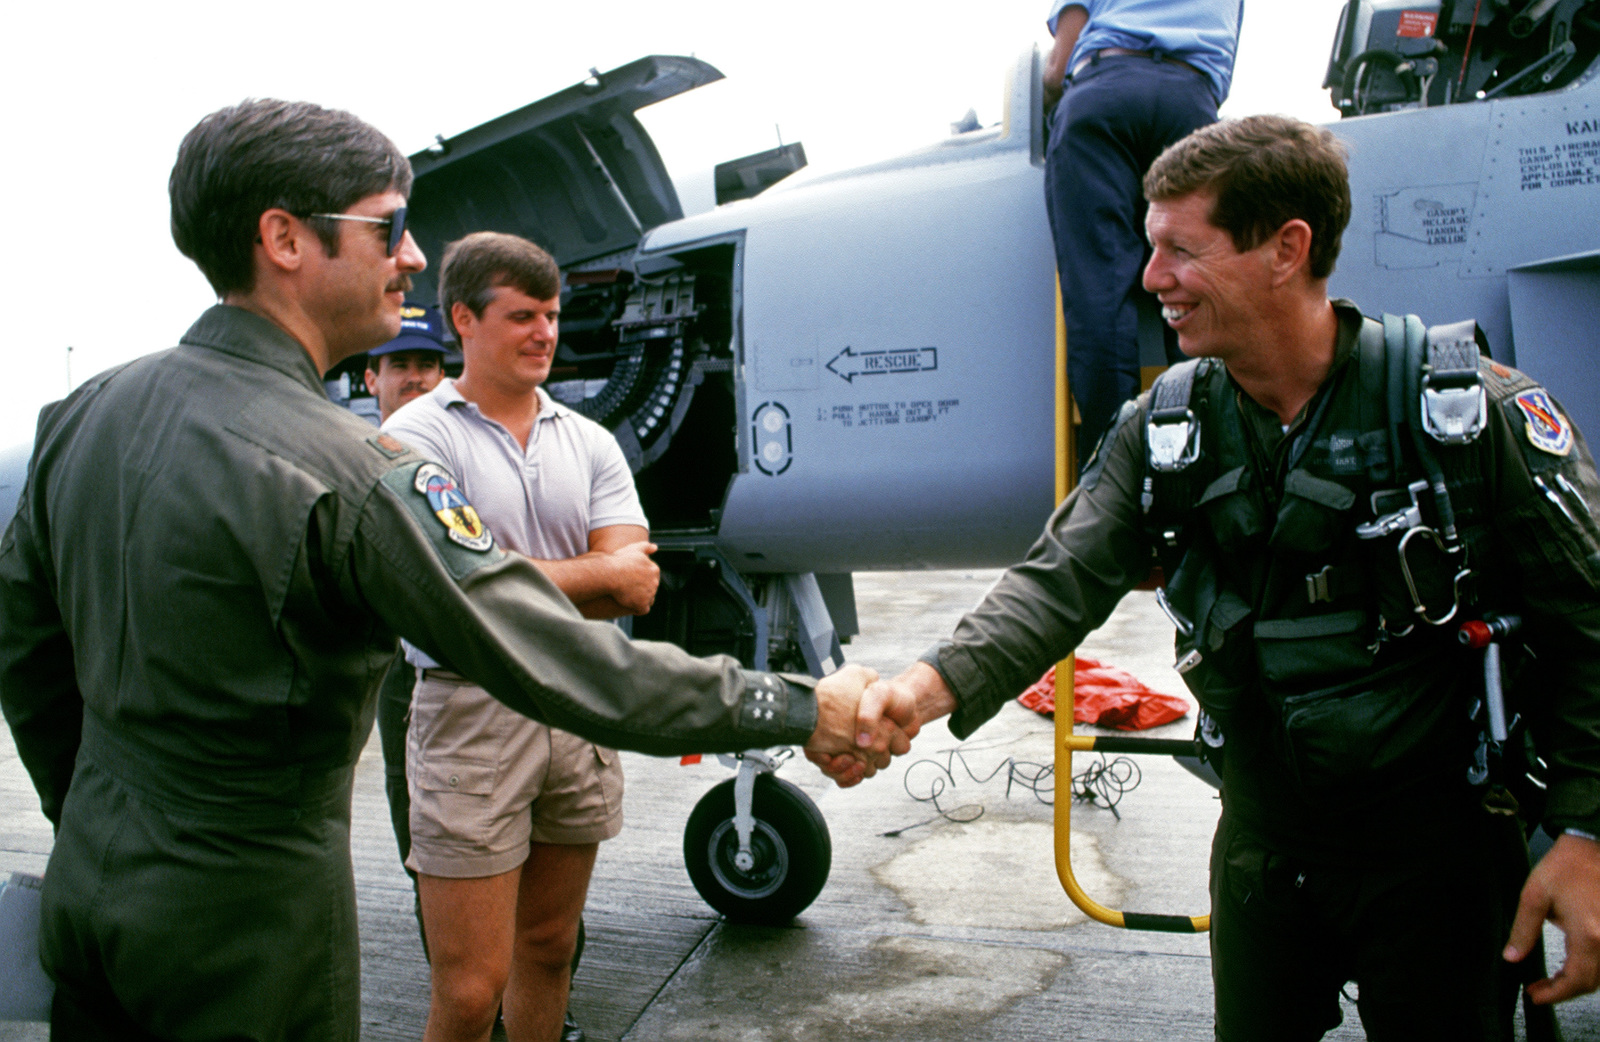 Two pilots from the 425th Tactical Fighter Training Squadron (425th TFTS) shake hands after the arrival of the pilot at right.  Behind them, civilian technicans work on an F-5E Tiger II aircraft. Thirty members of the 425th TFTS are in Honduras to support Exercise AMIGO SOUTH and to cross train with the Honduran air force.